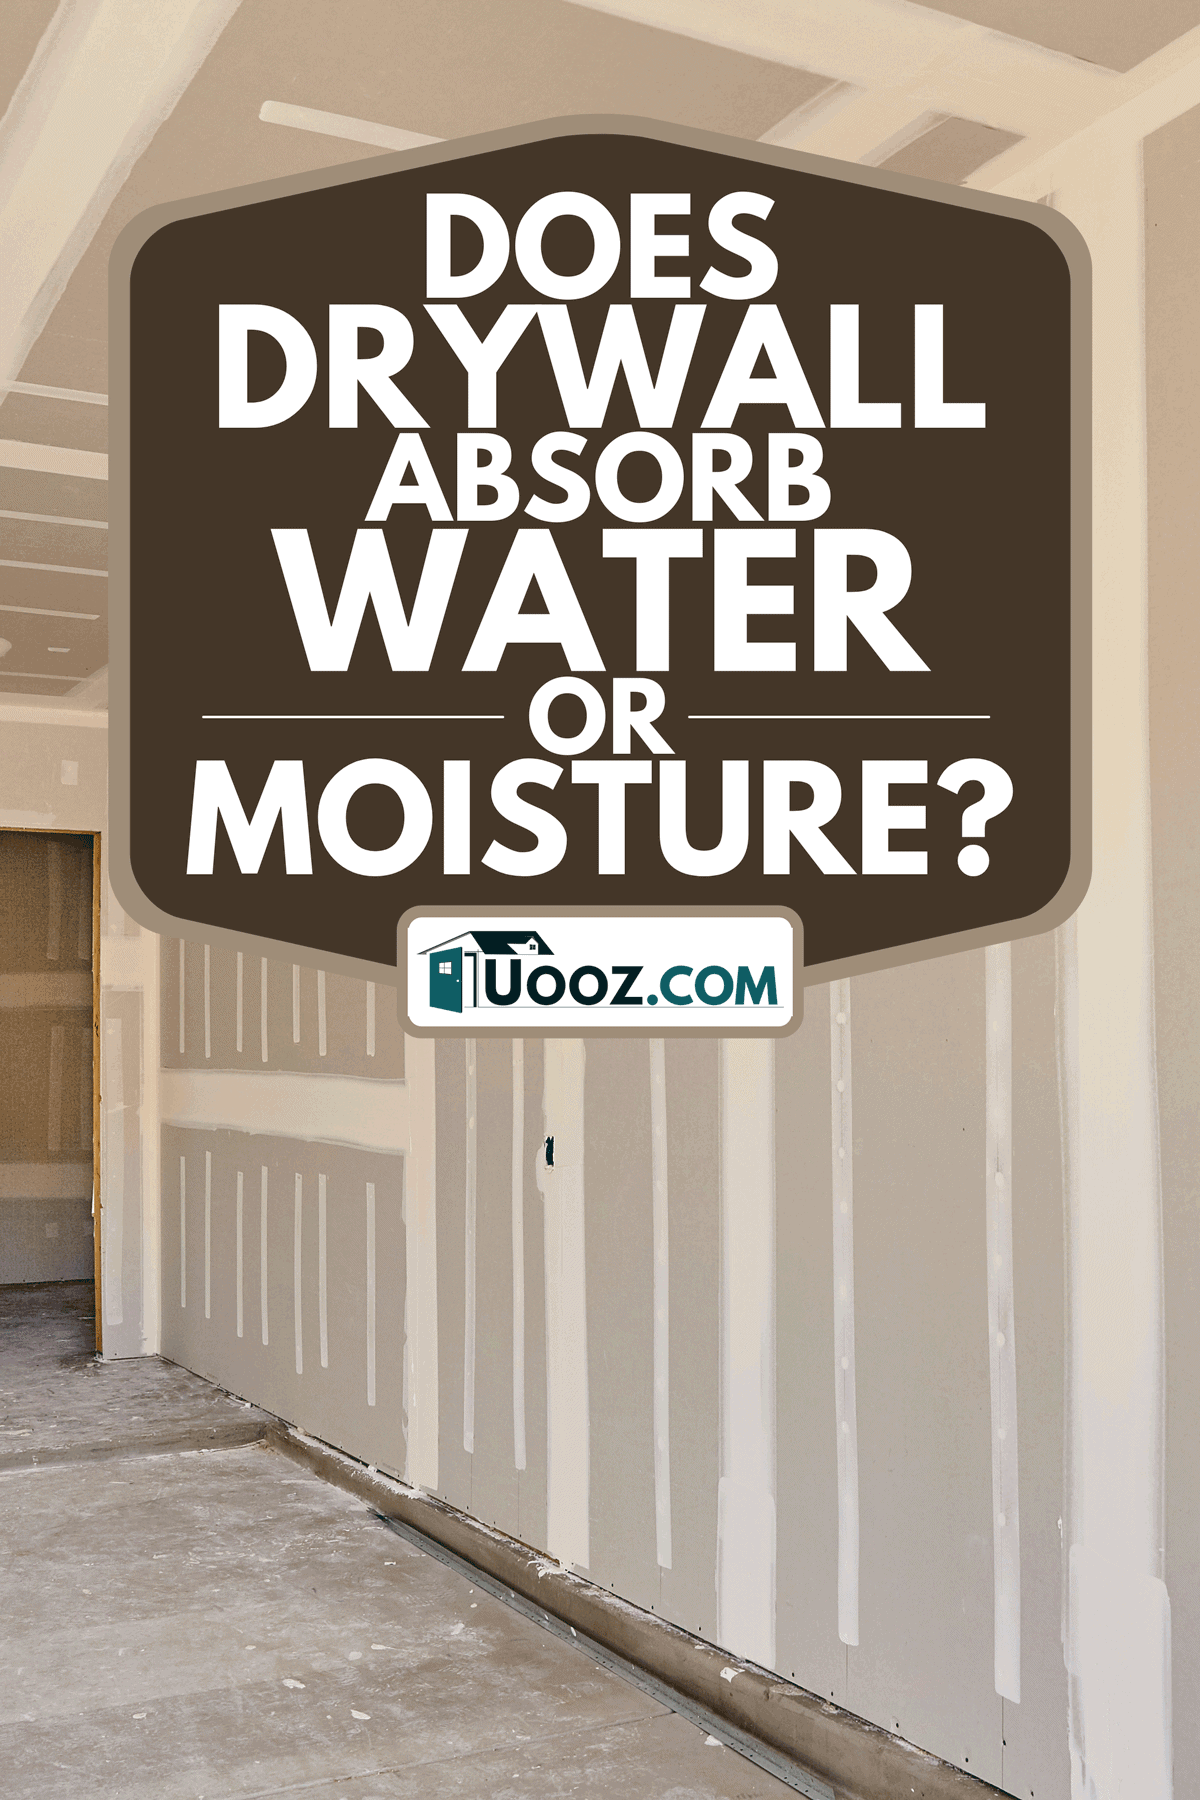 A construction building with drywall taping, Does Drywall Absorb Water Or Moisture?